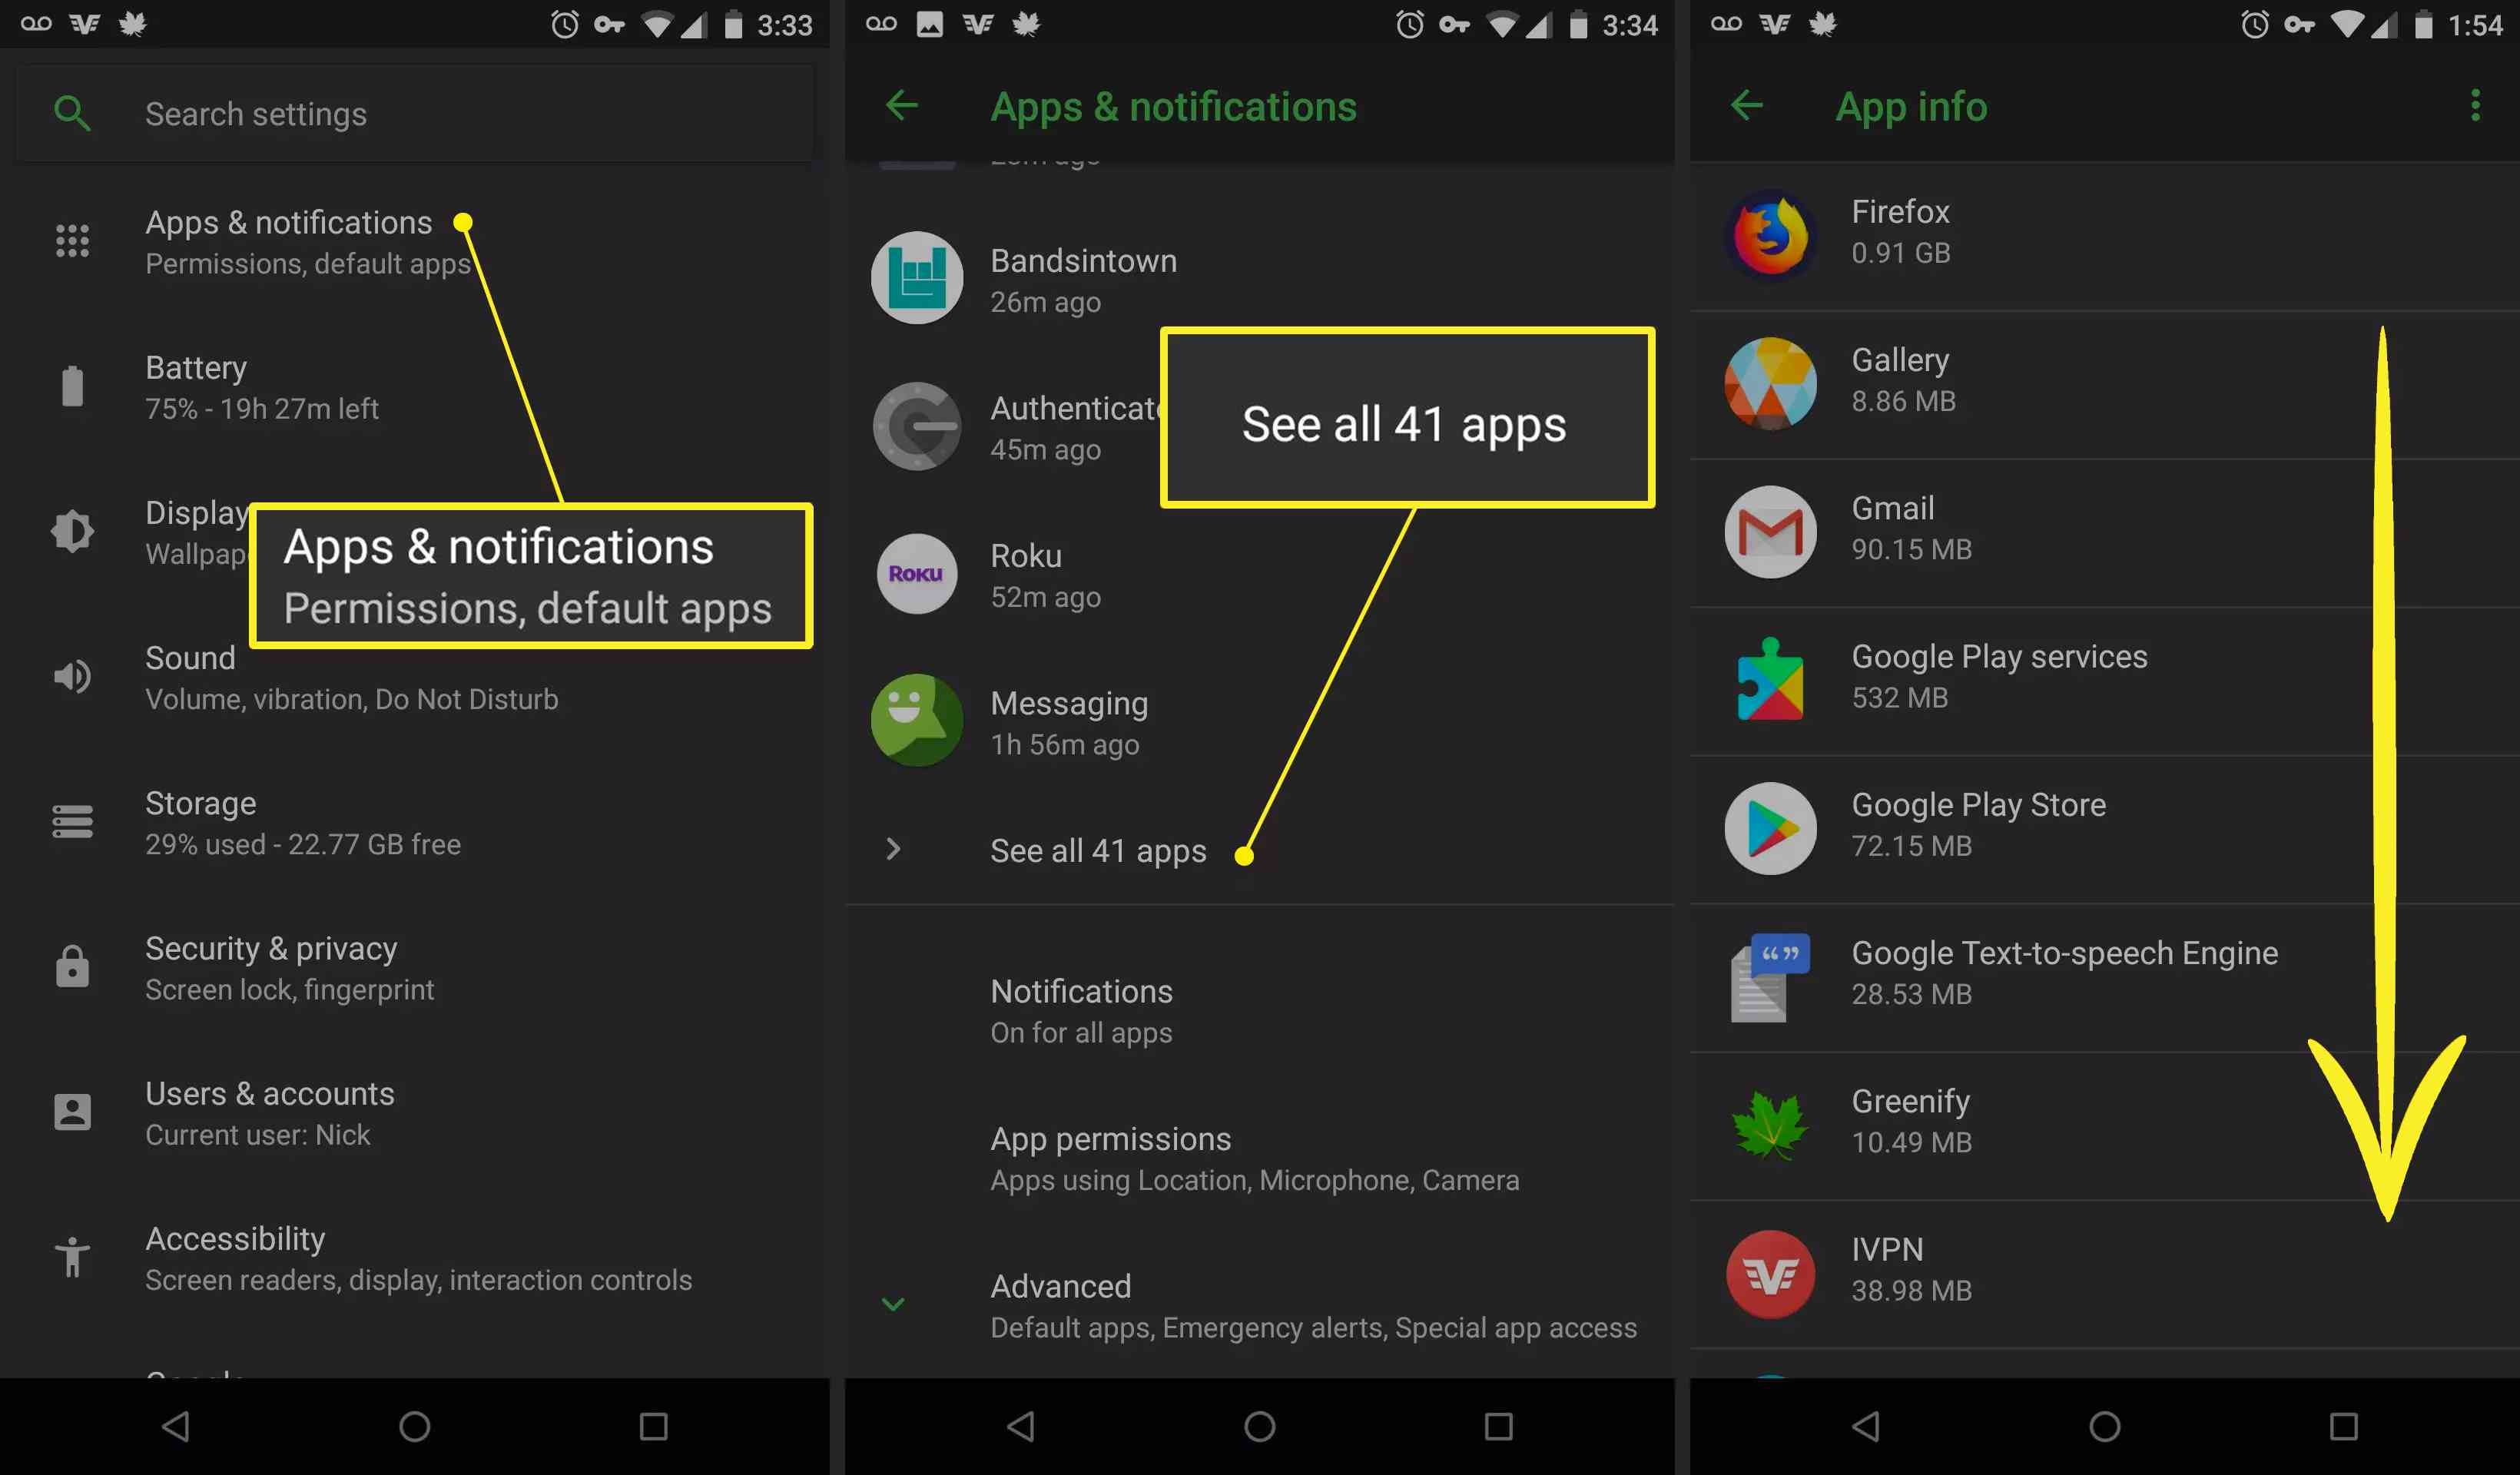 On Android, Apps & notifications open with all apps displayed